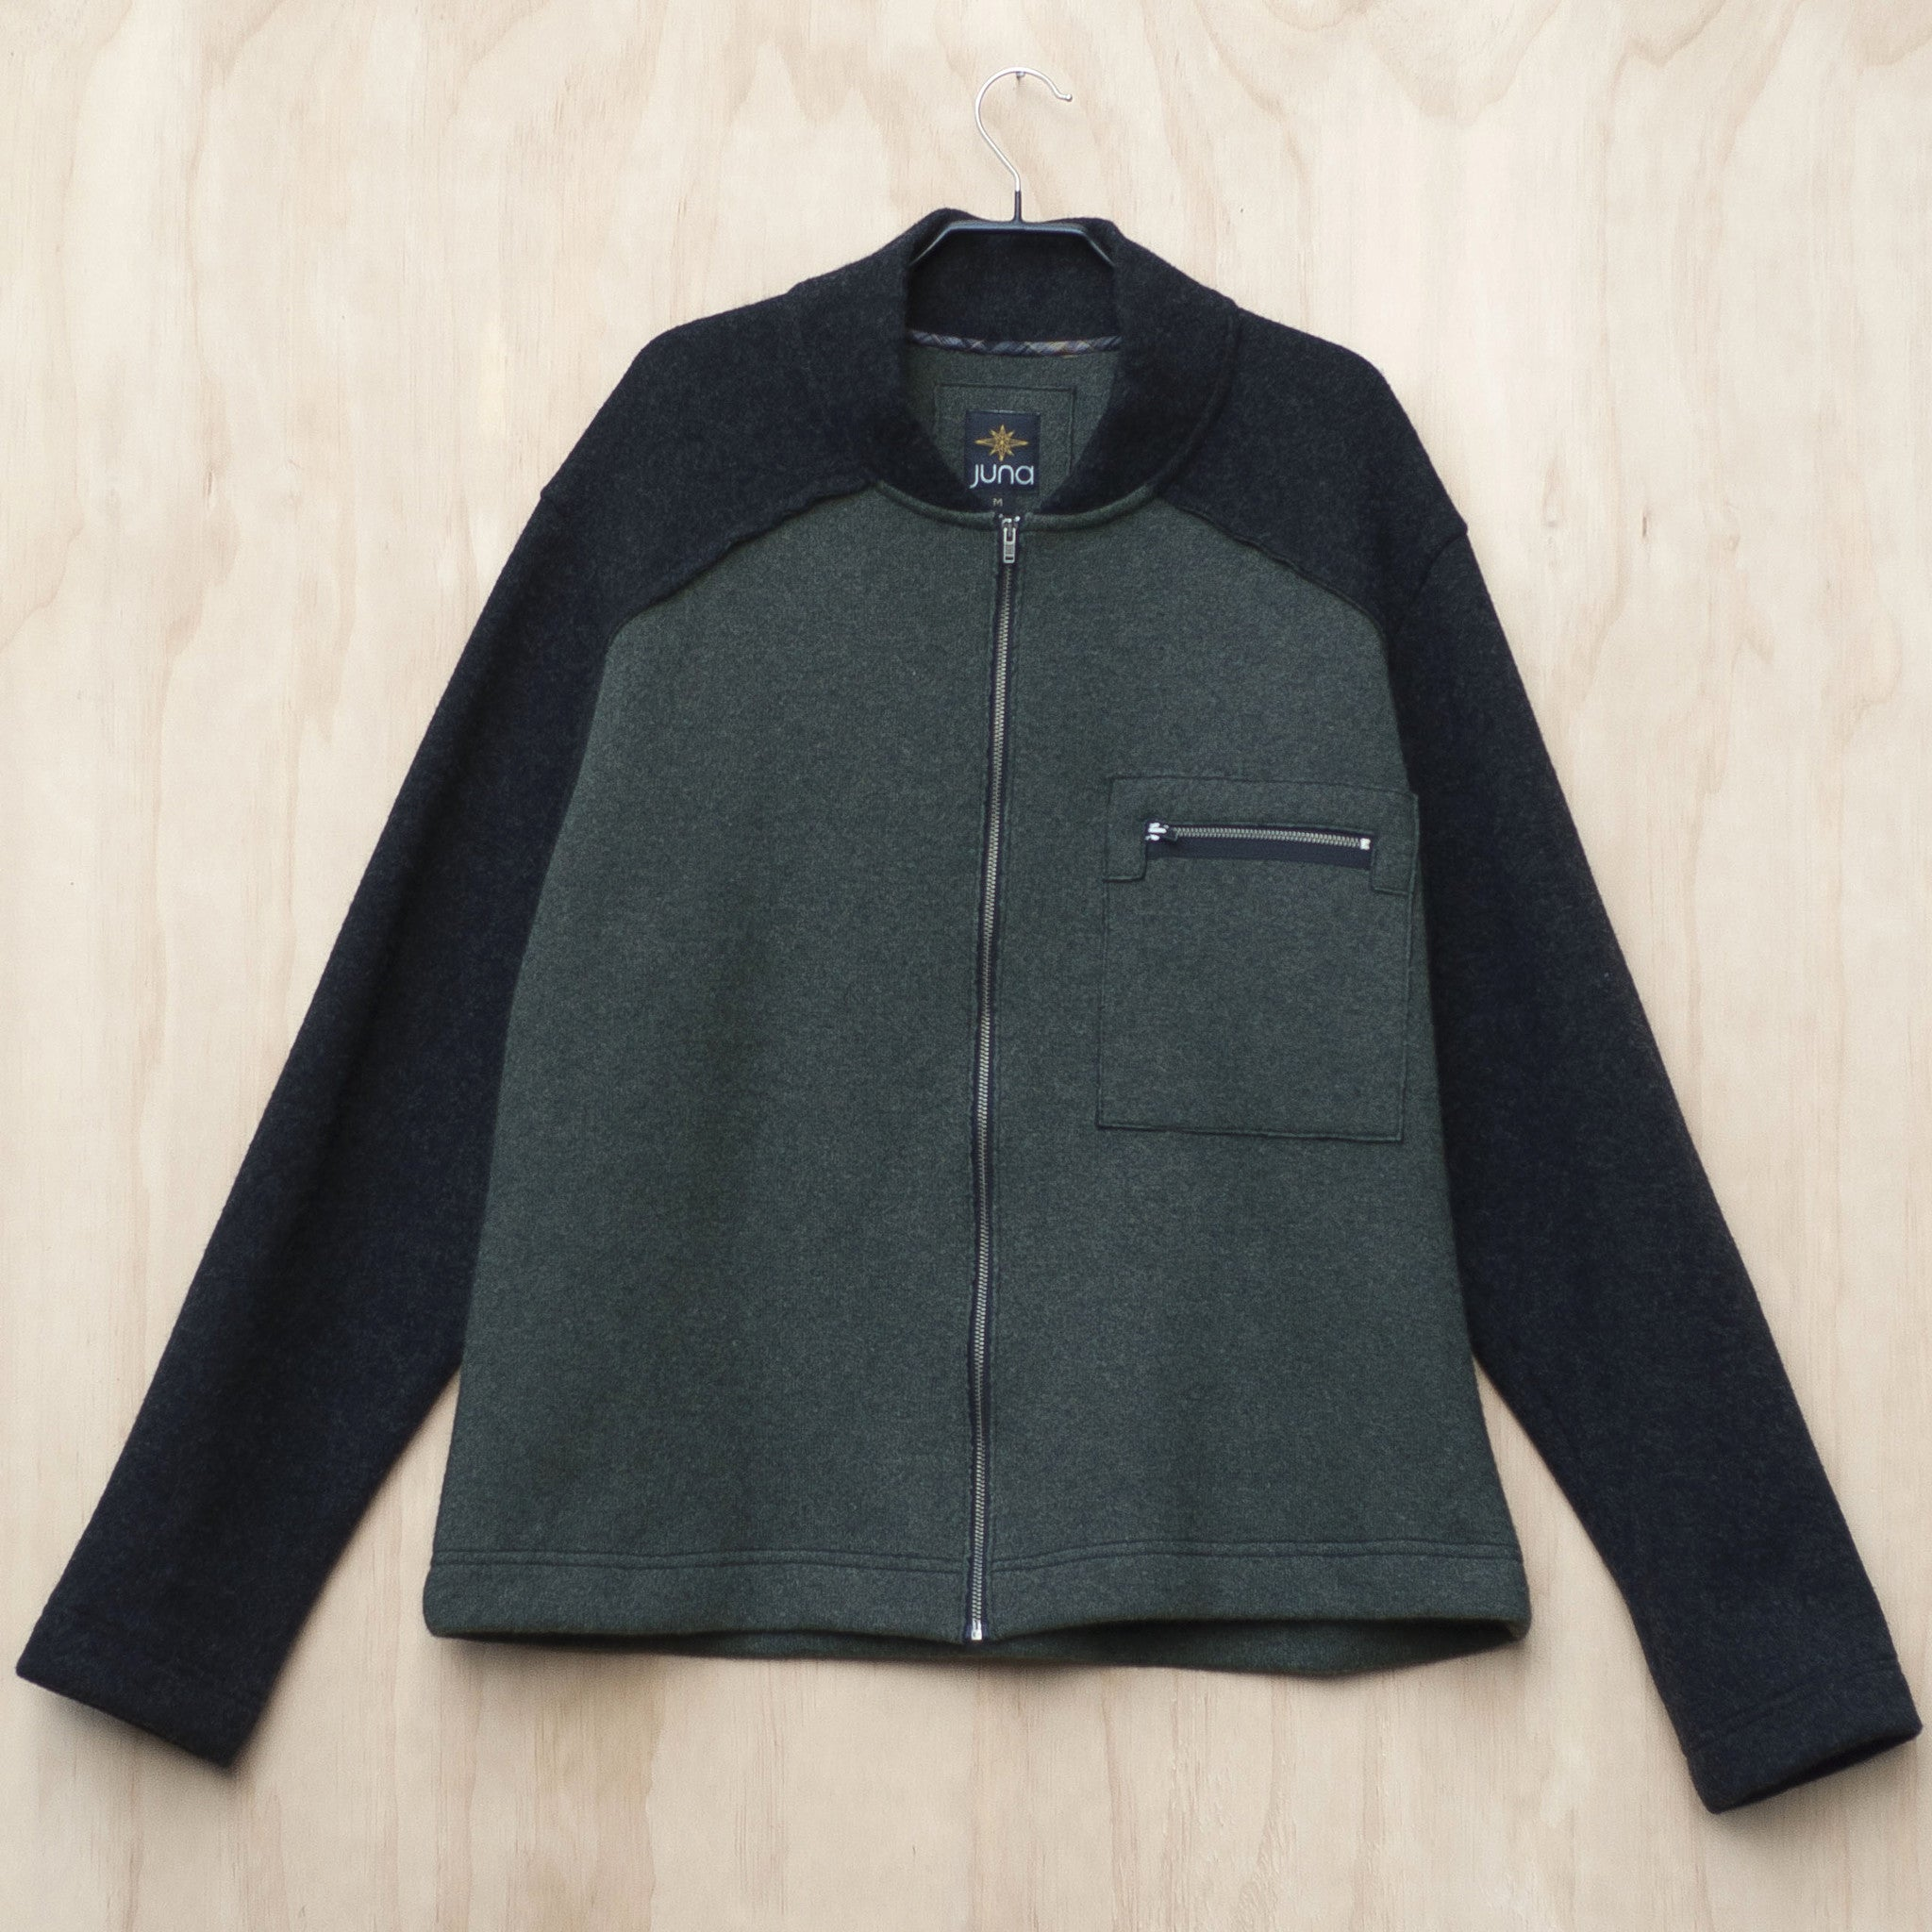 Juna Menswear Hakanoa Jacket - Green